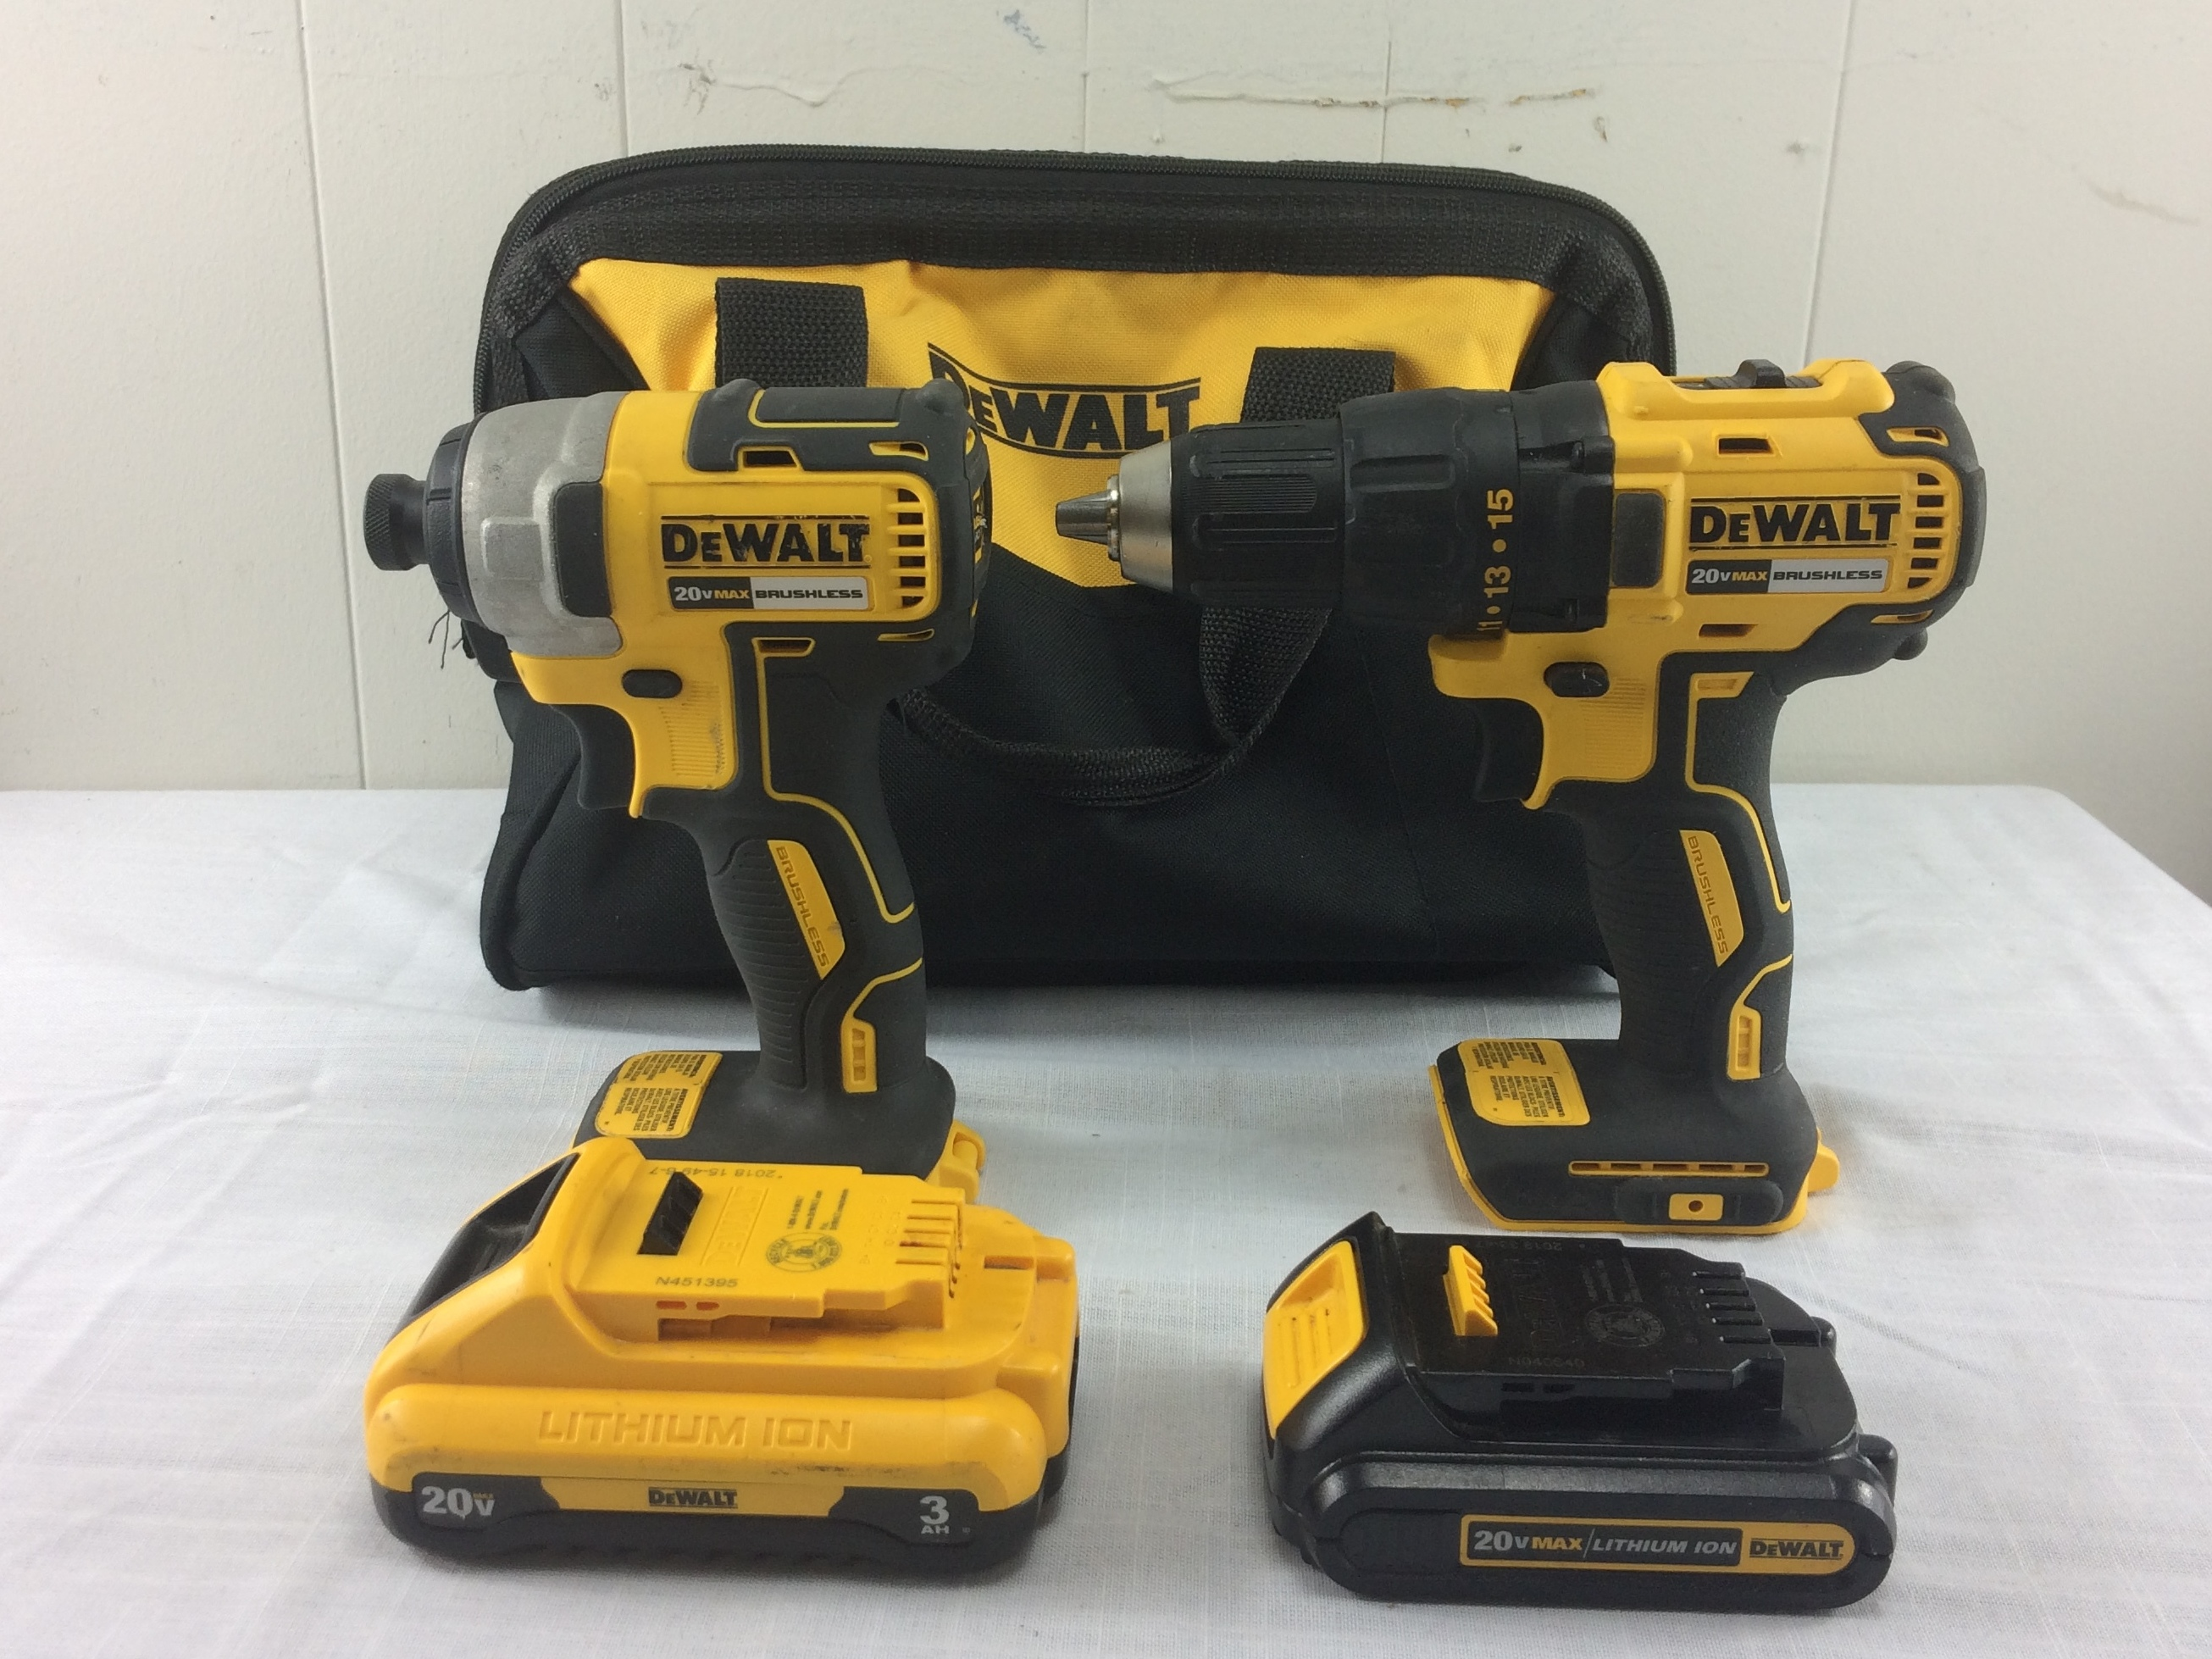 Dewalt DCD777 Drill Driver and DCF787 Impact Driver - 2 Batteries - No Charger